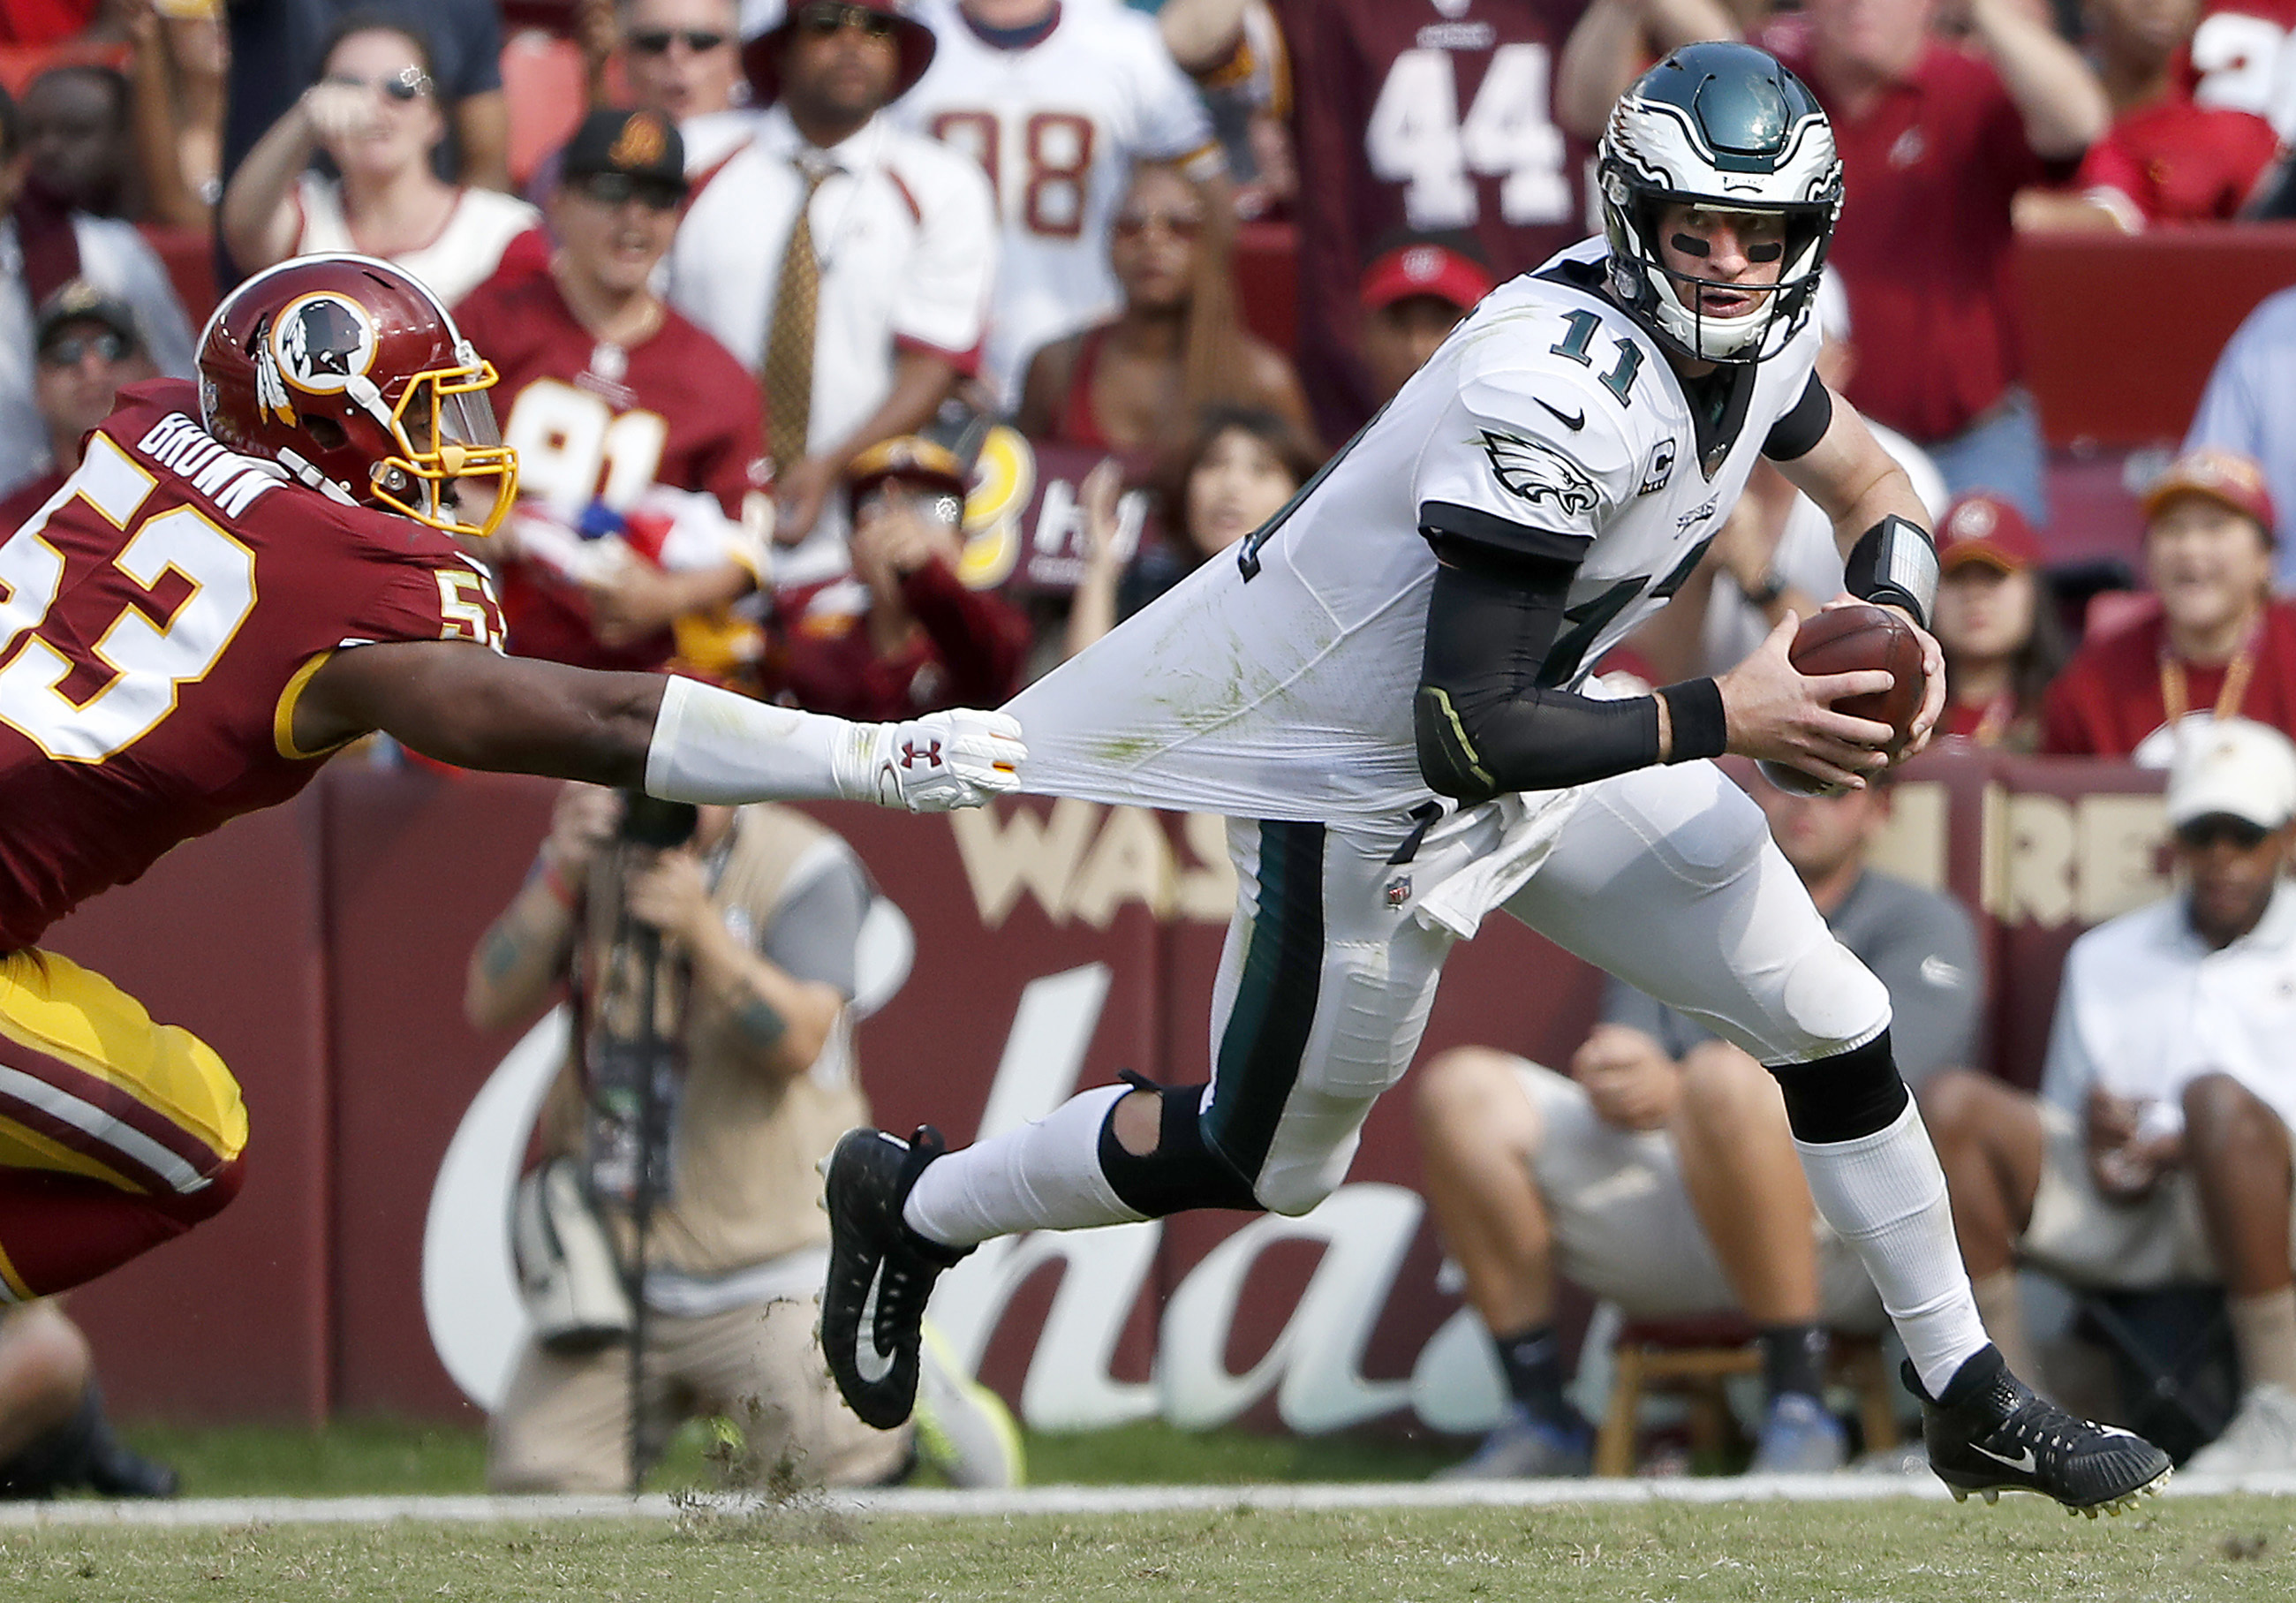 Carson Wentz scrambles away from the Redskins' Zach Brown last September. The Eagles don´t face their divisional rival until December this season.